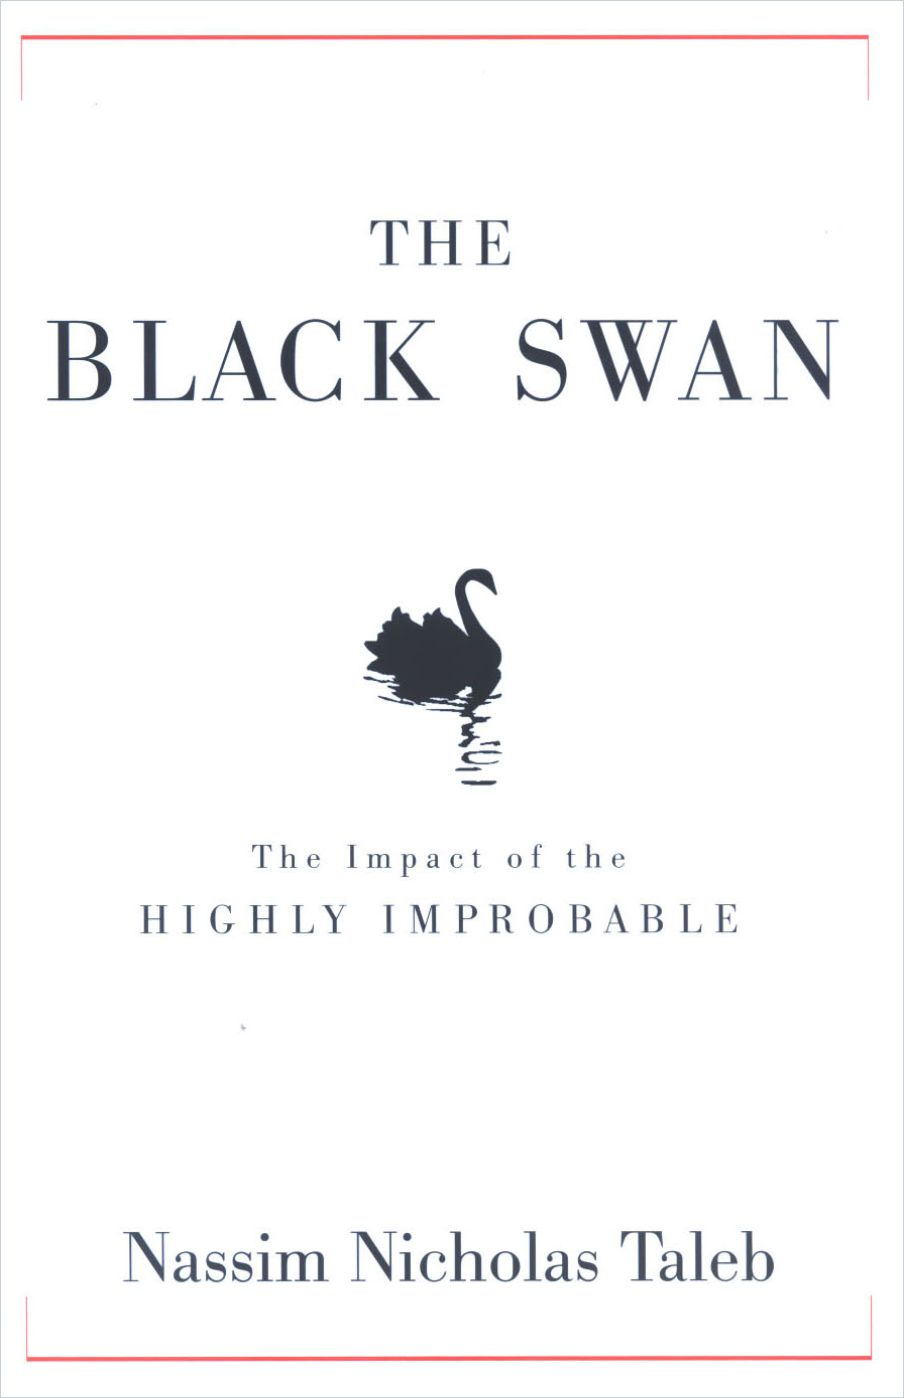 Image of: The Black Swan